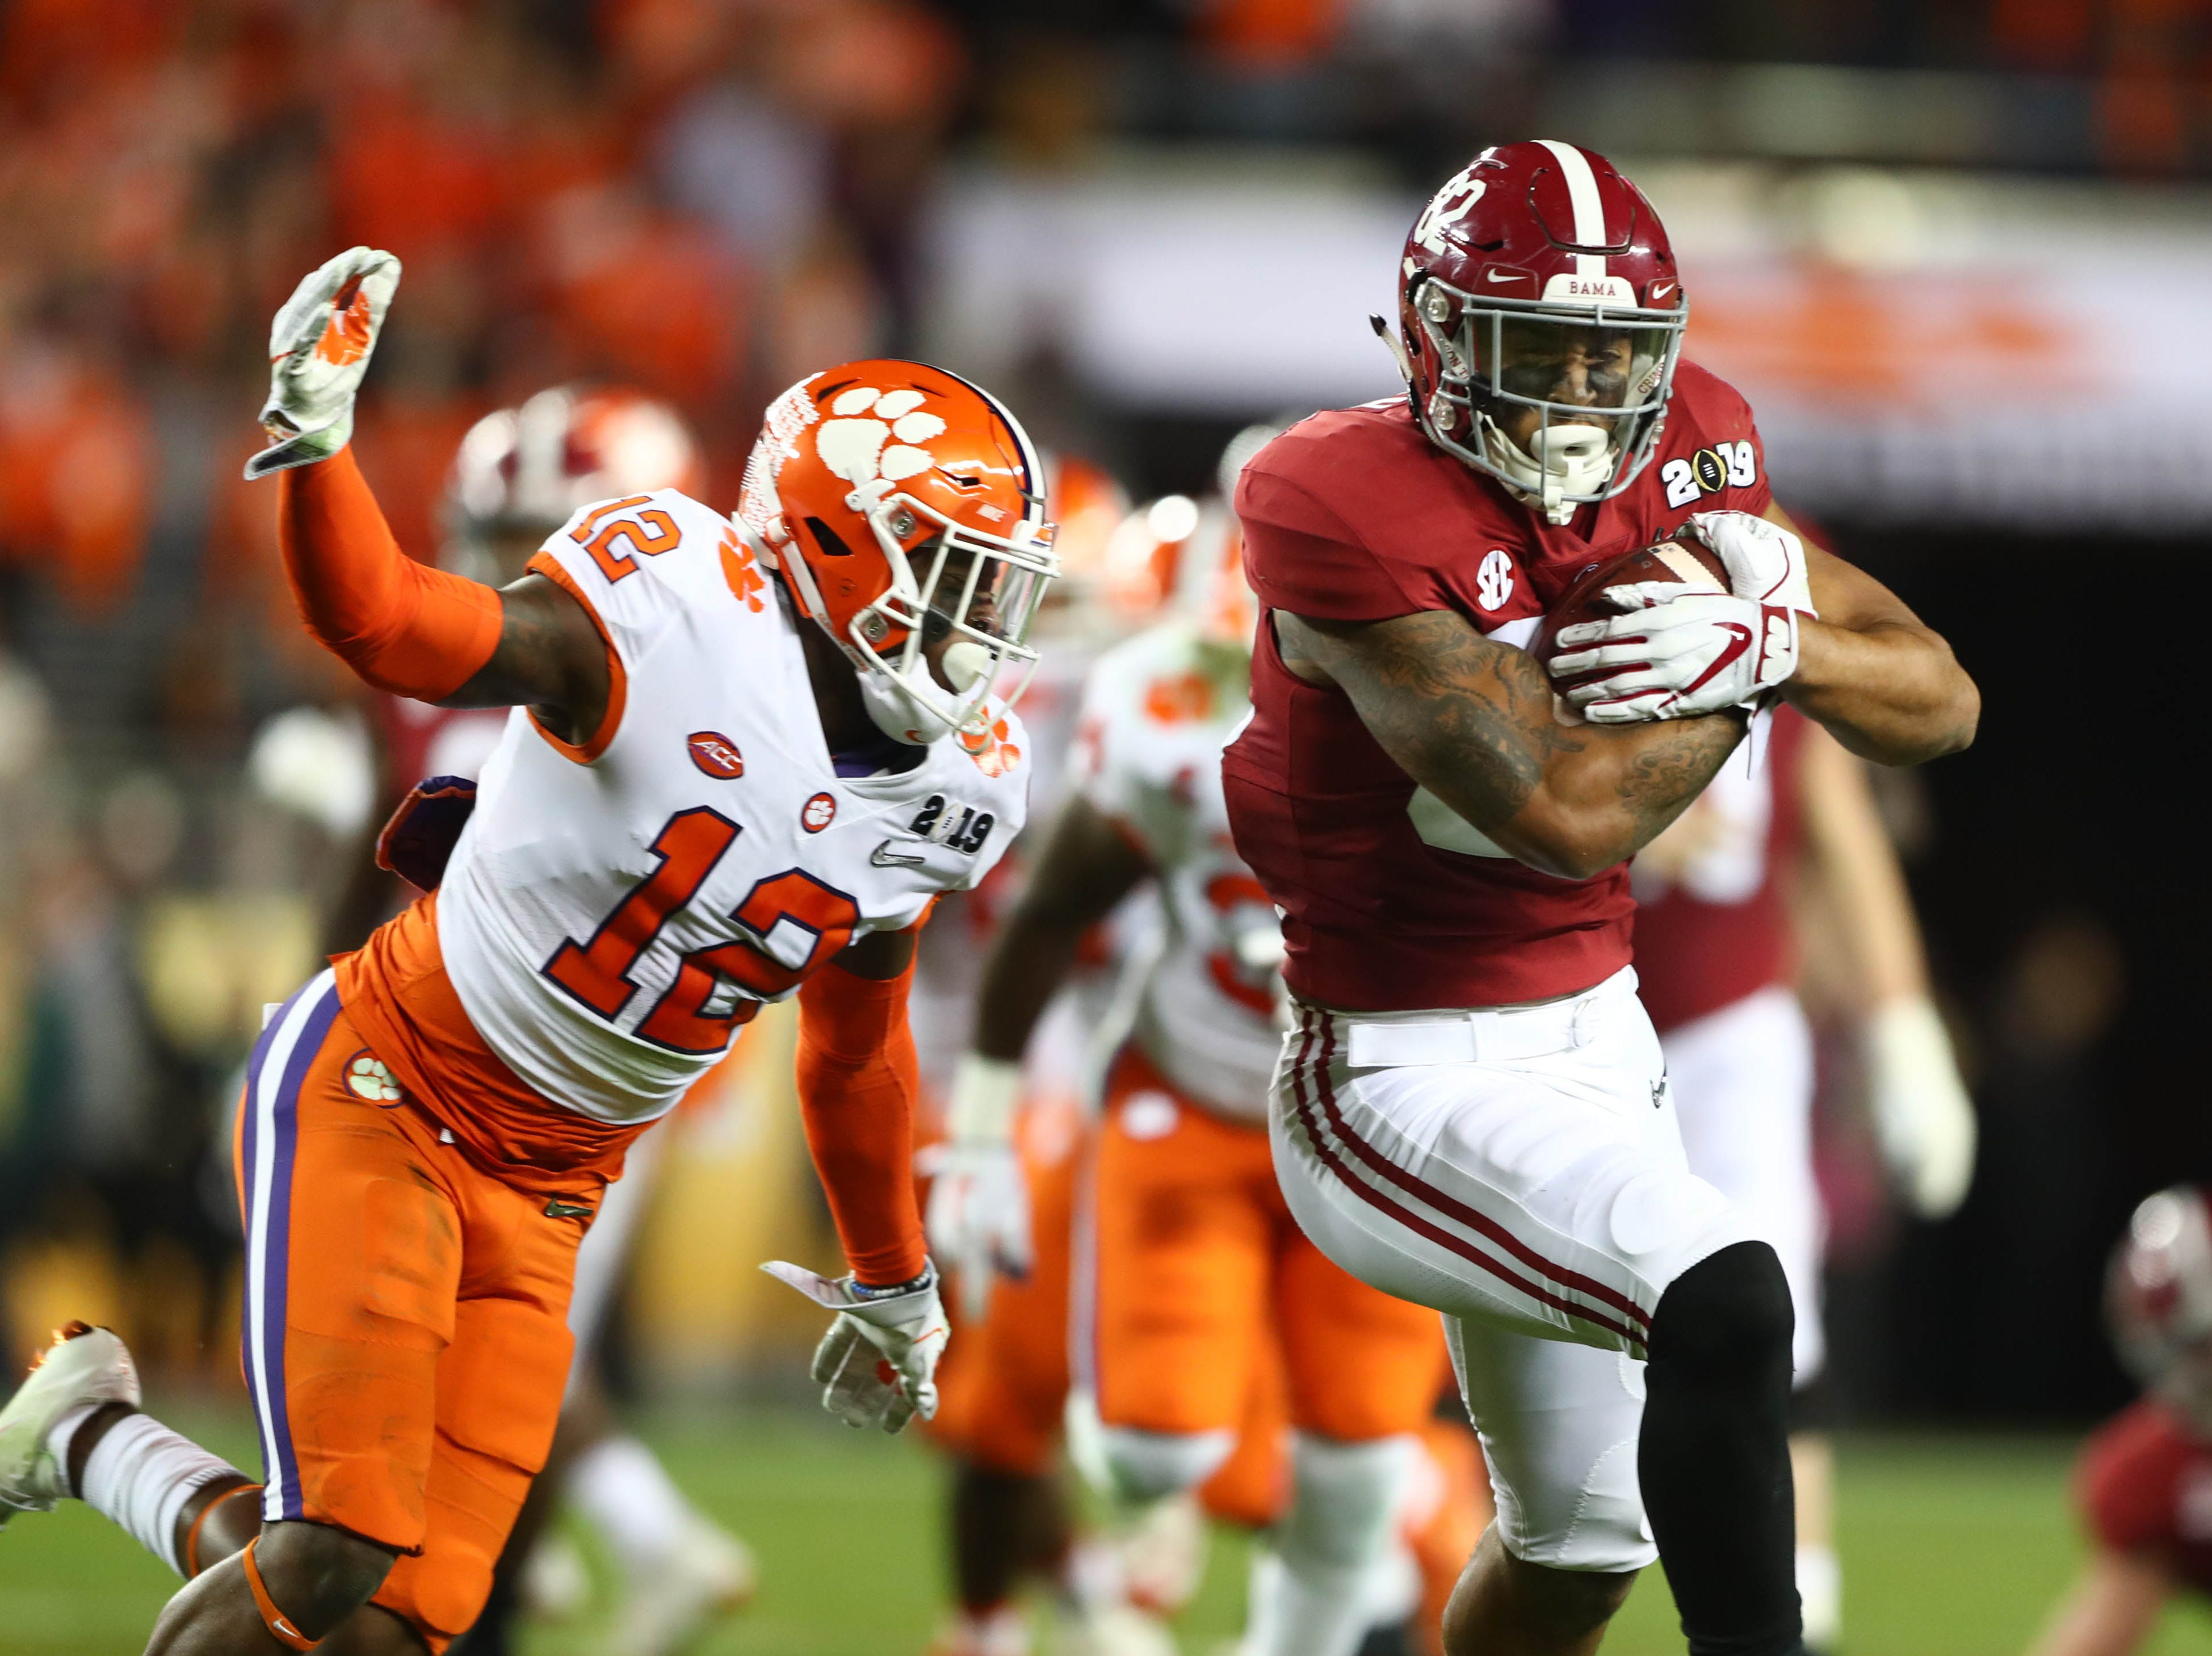 Alabama tight end Irv Smith Jr. catches a pass against Clemson during the College Football Playoff Championship game at Levi's Stadium.